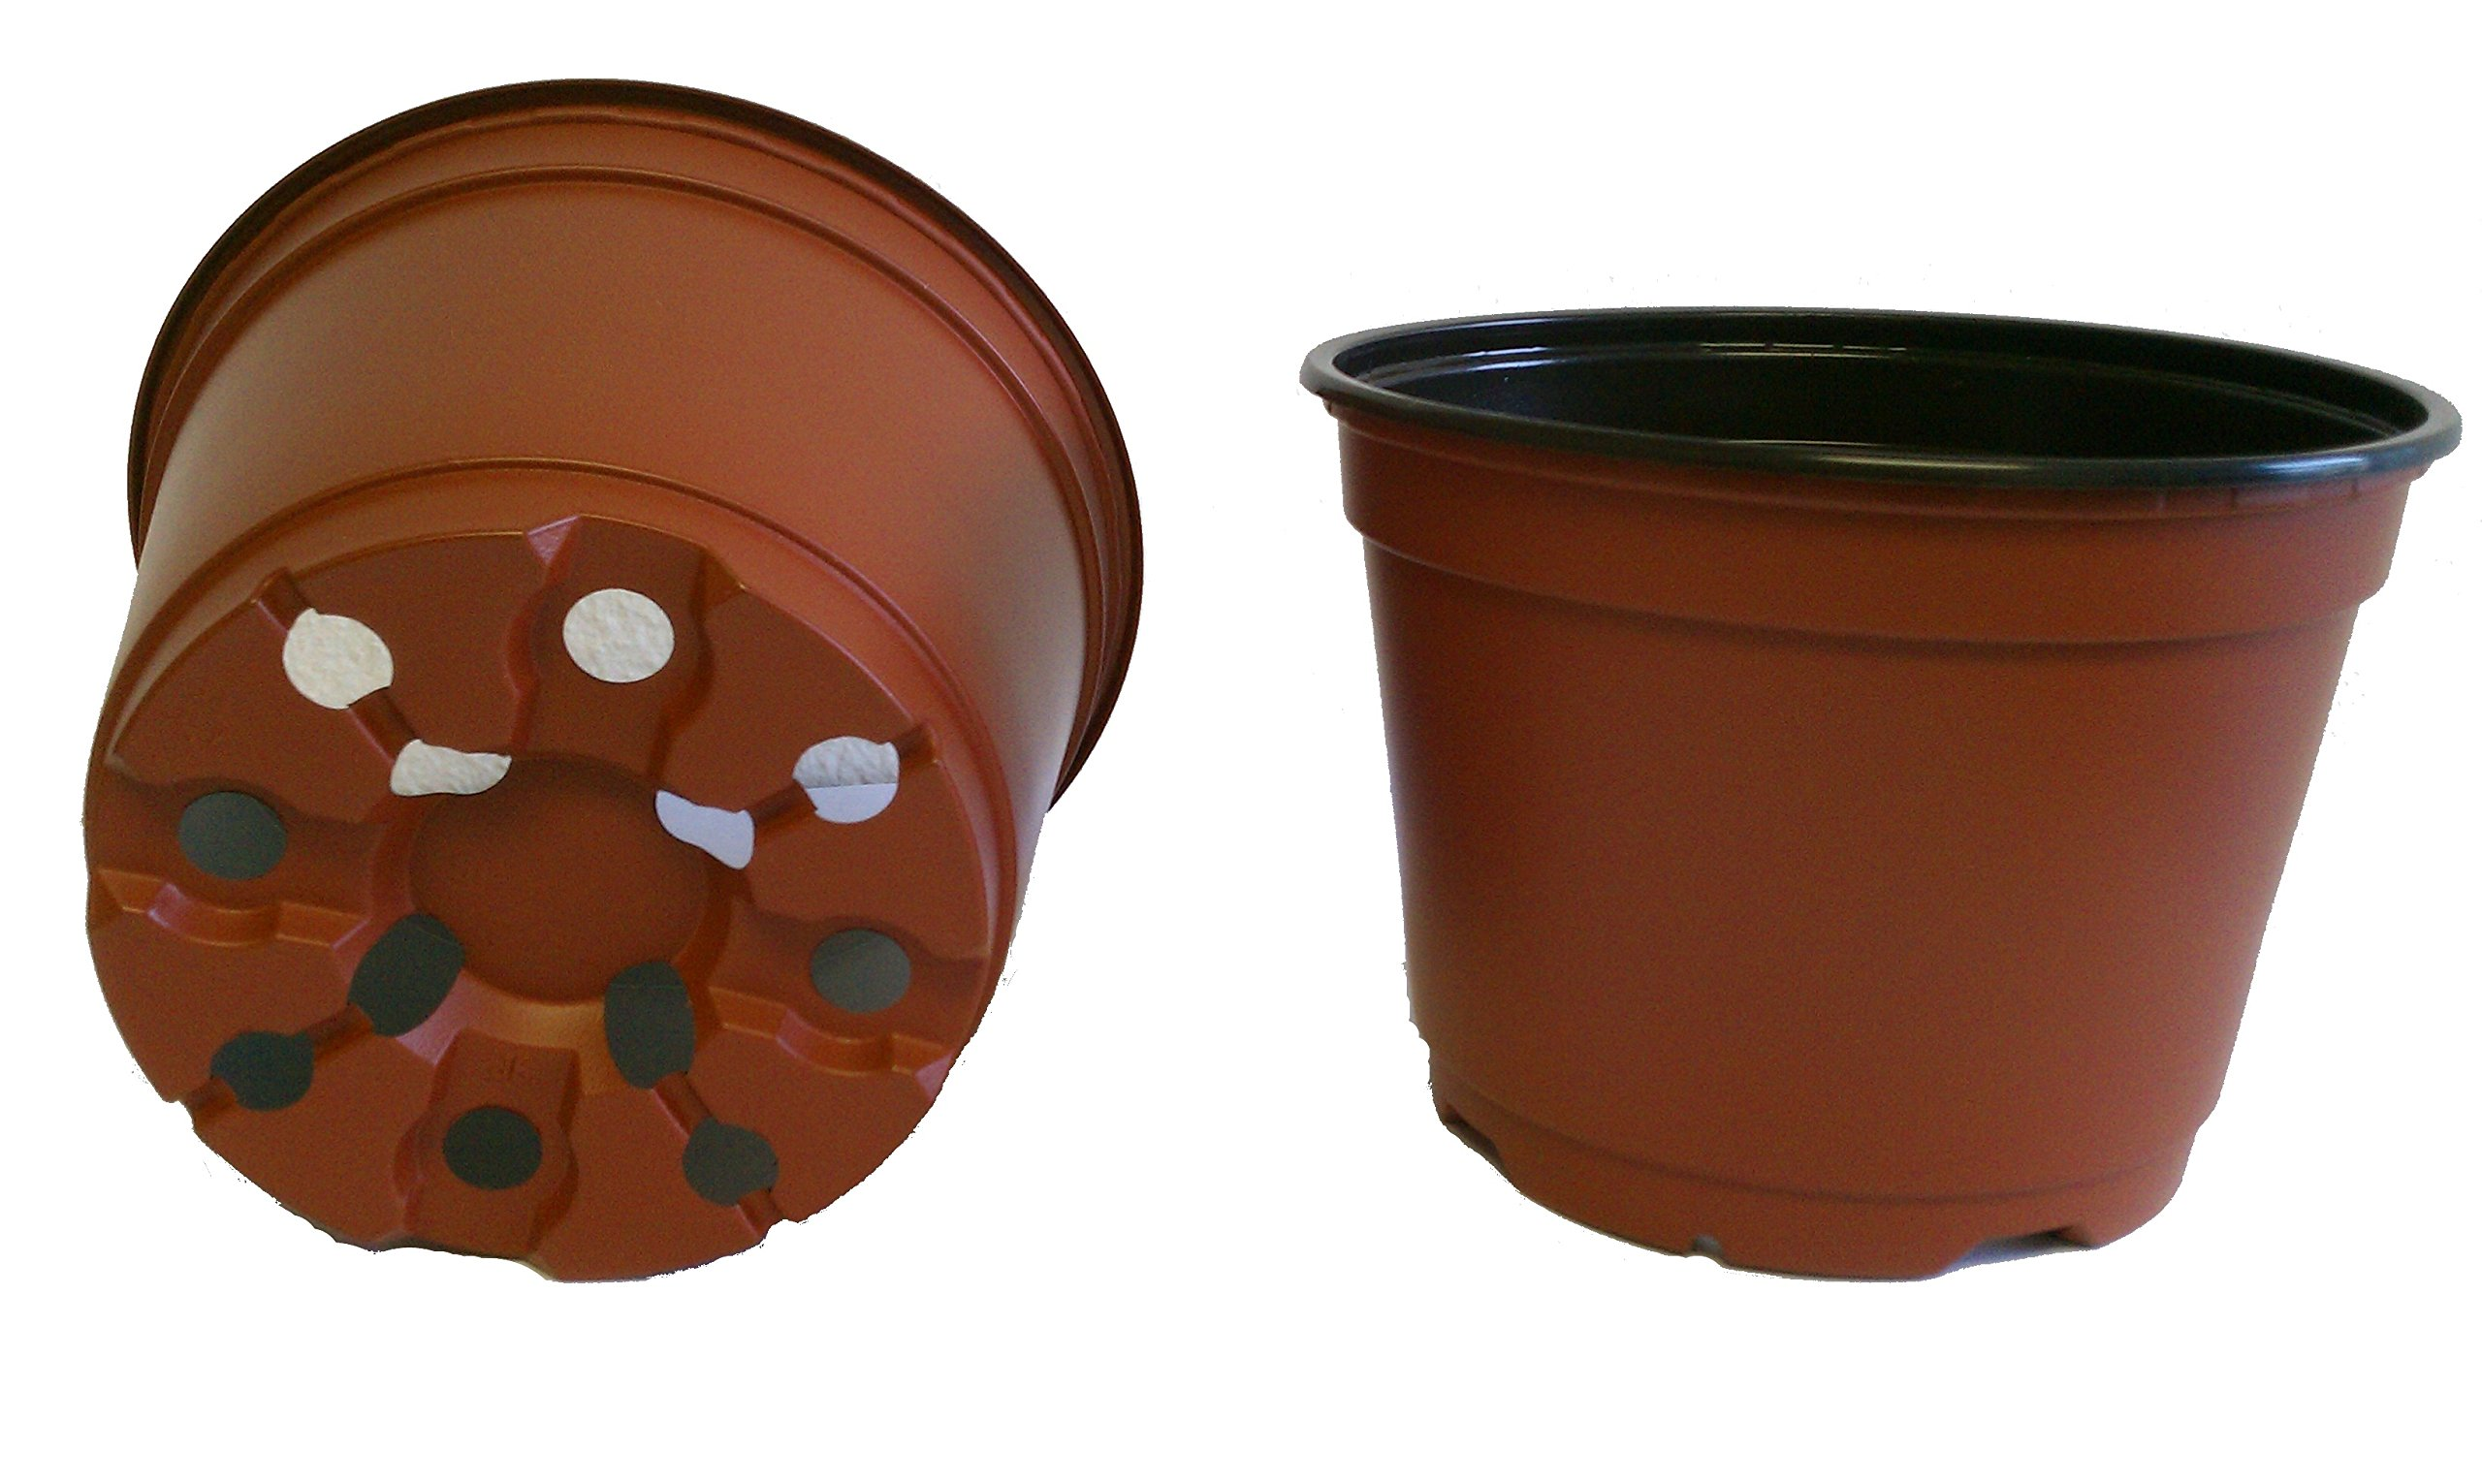 20 NEW 6 Inch TEKU Plastic Nursery Pots - Azalea Style ~ Pots ARE 6 Inch Round At the Top and 4.25 Inch Deep. Color : Terracotta by Teku